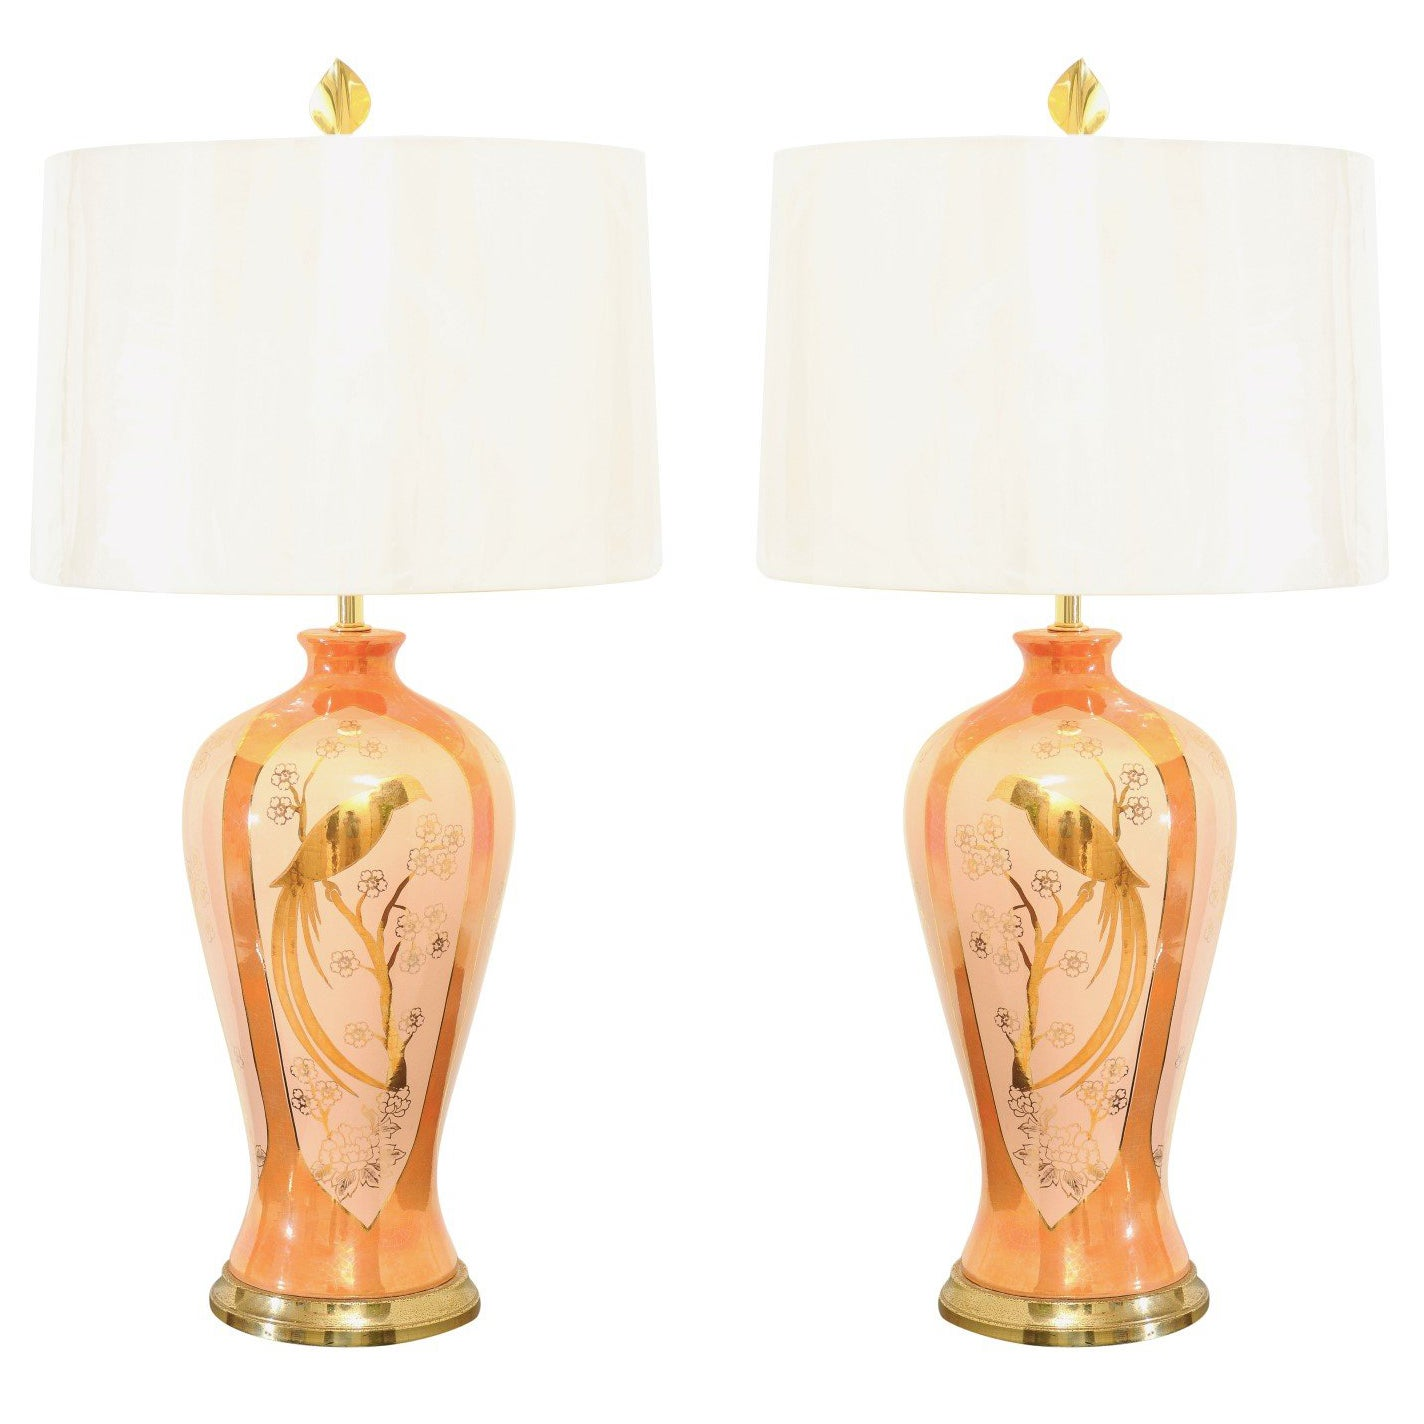 Chic Pair of Porcelain Marbro Lamps in Hermes Orange and Coral, circa 1960